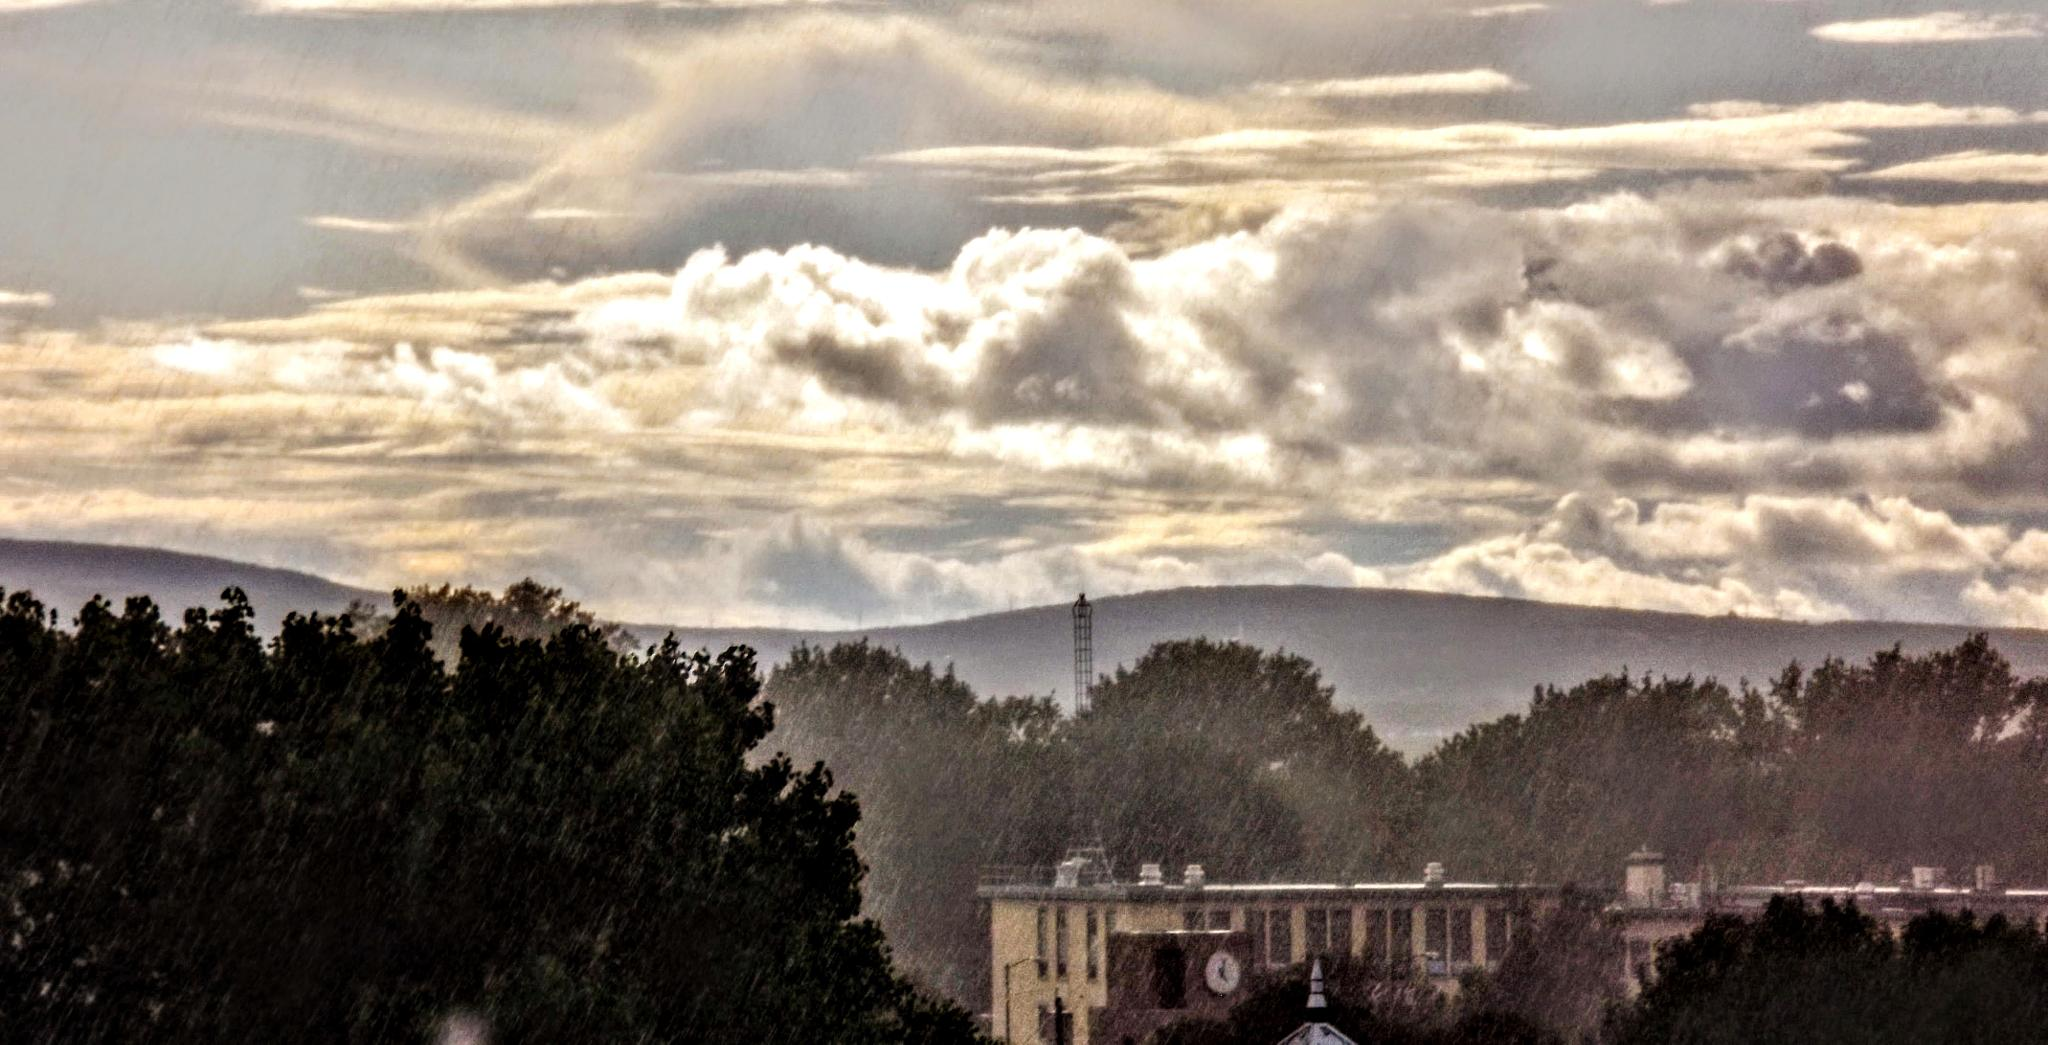 Rain on Quebec city by real.michaud.5036